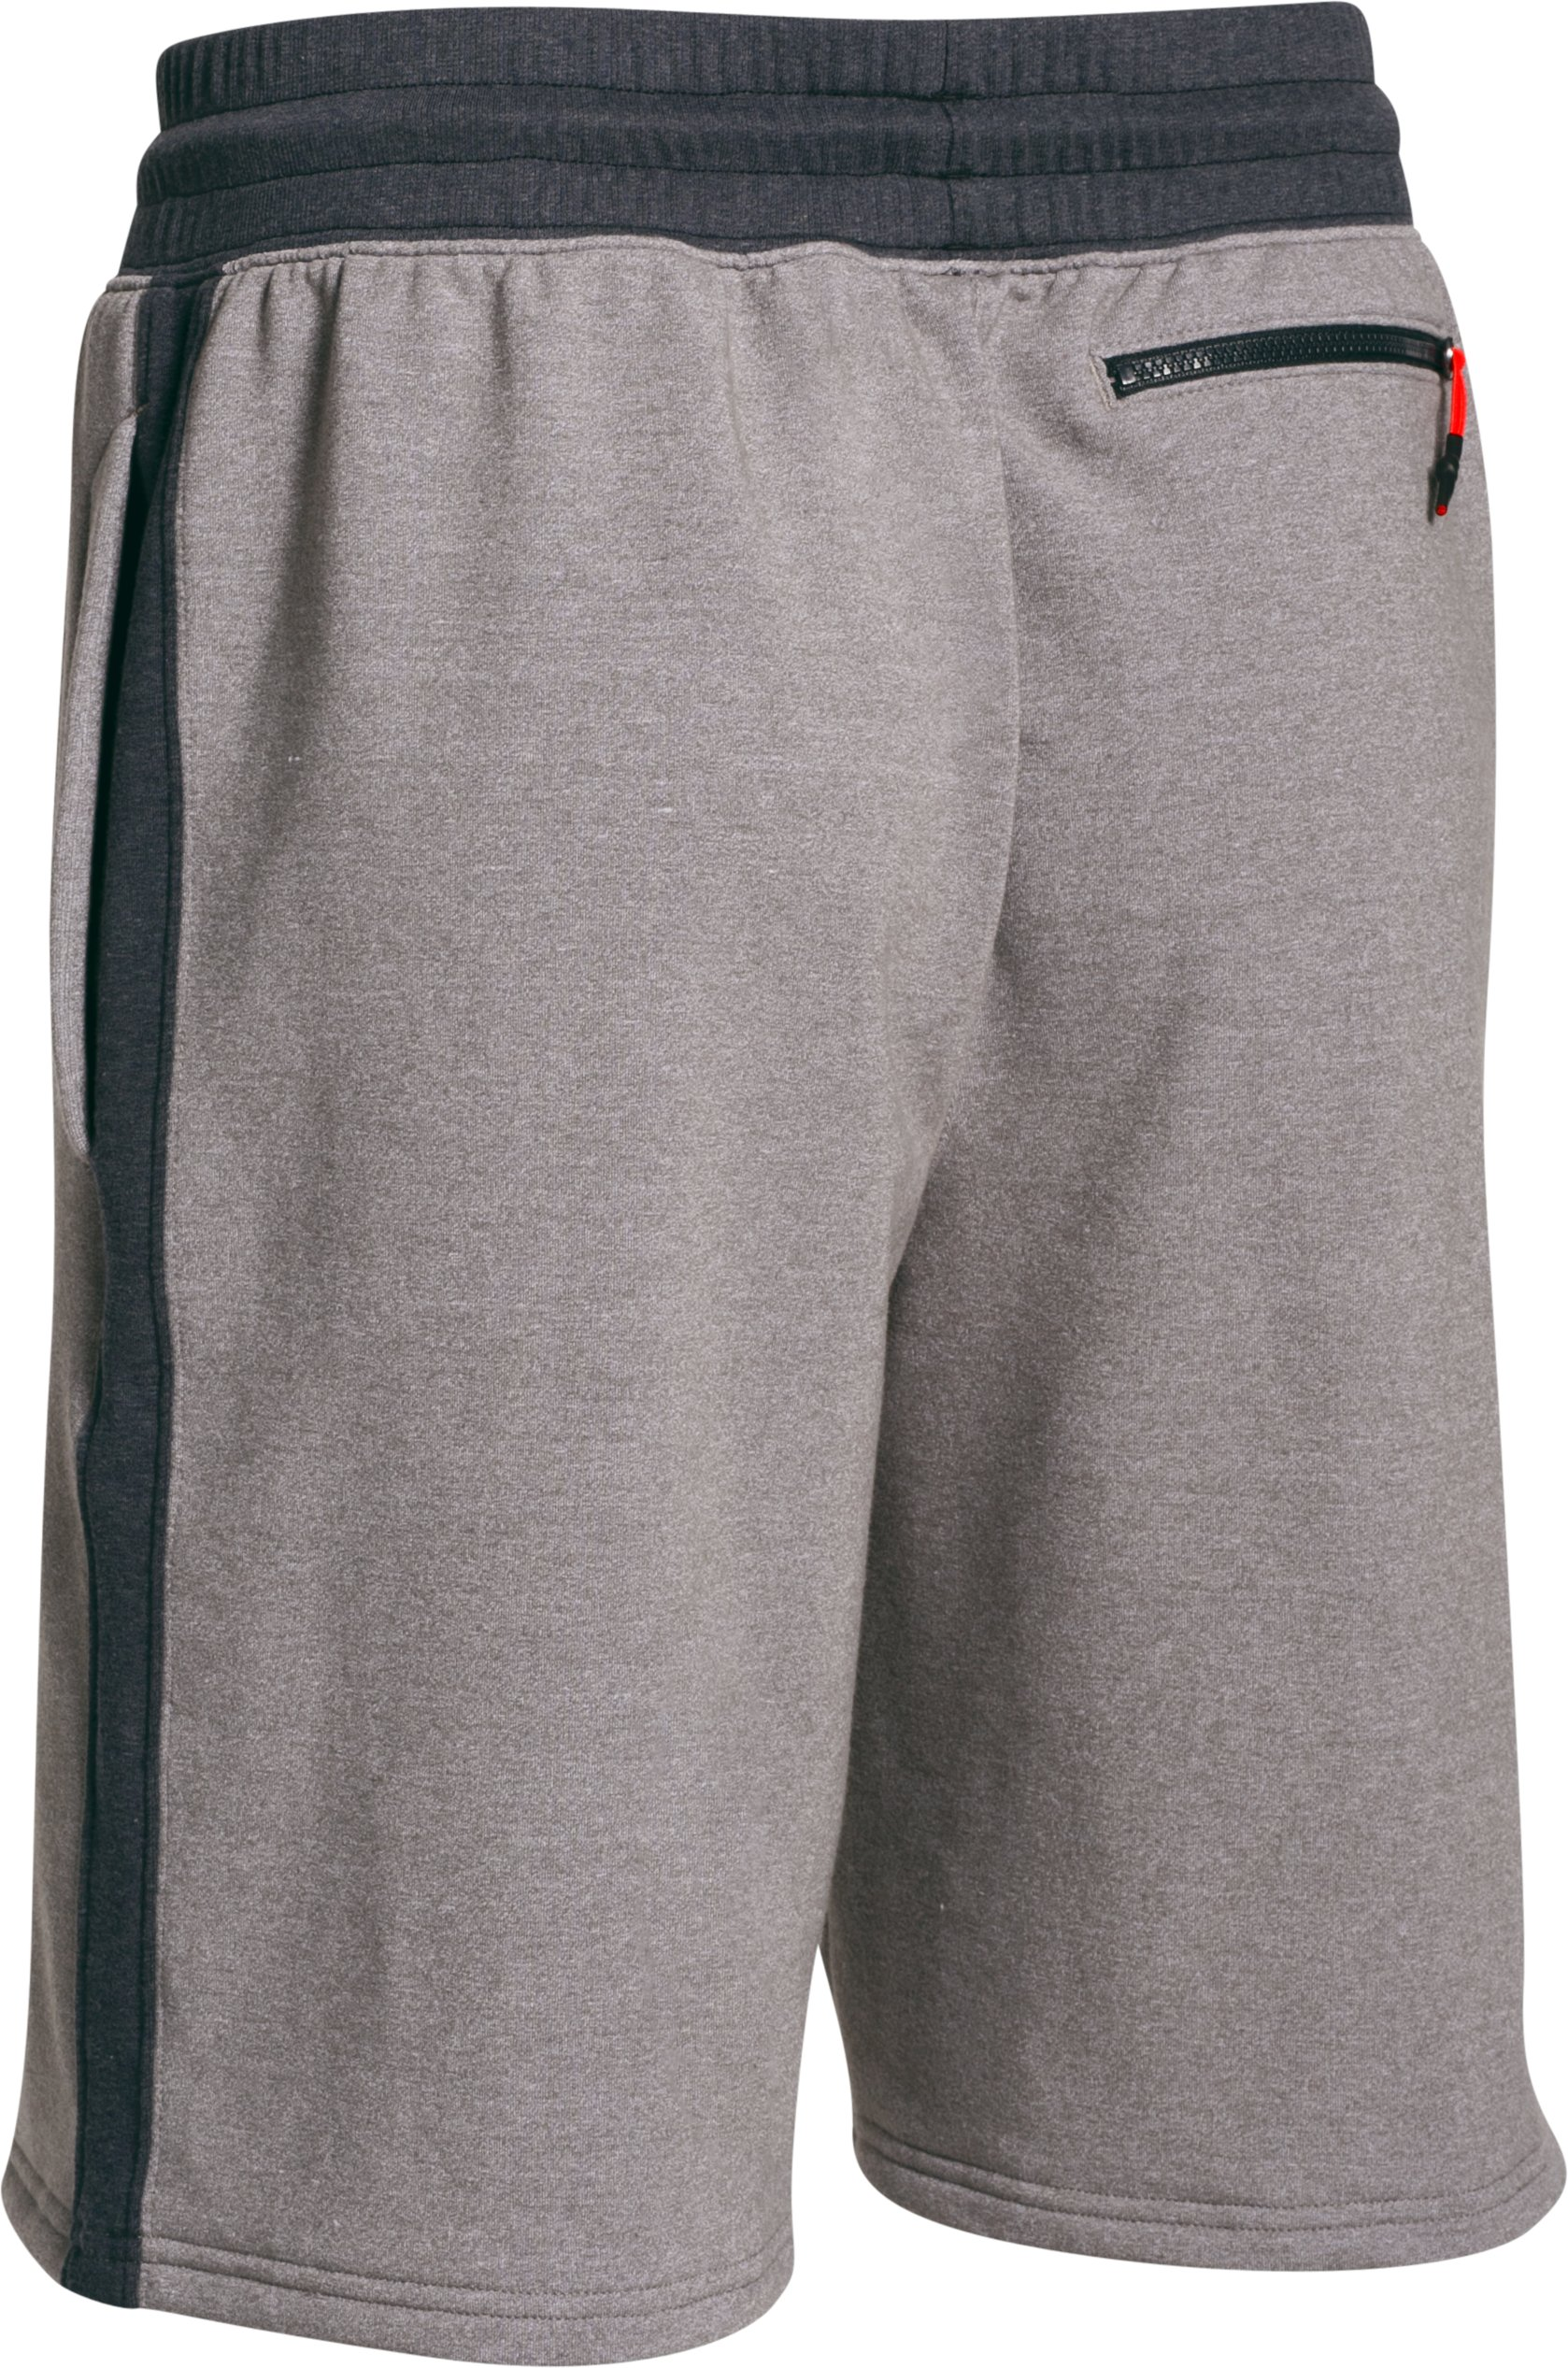 Men's UA x Muhammad Ali Terry Shorts, GREYHOUND HEATHER